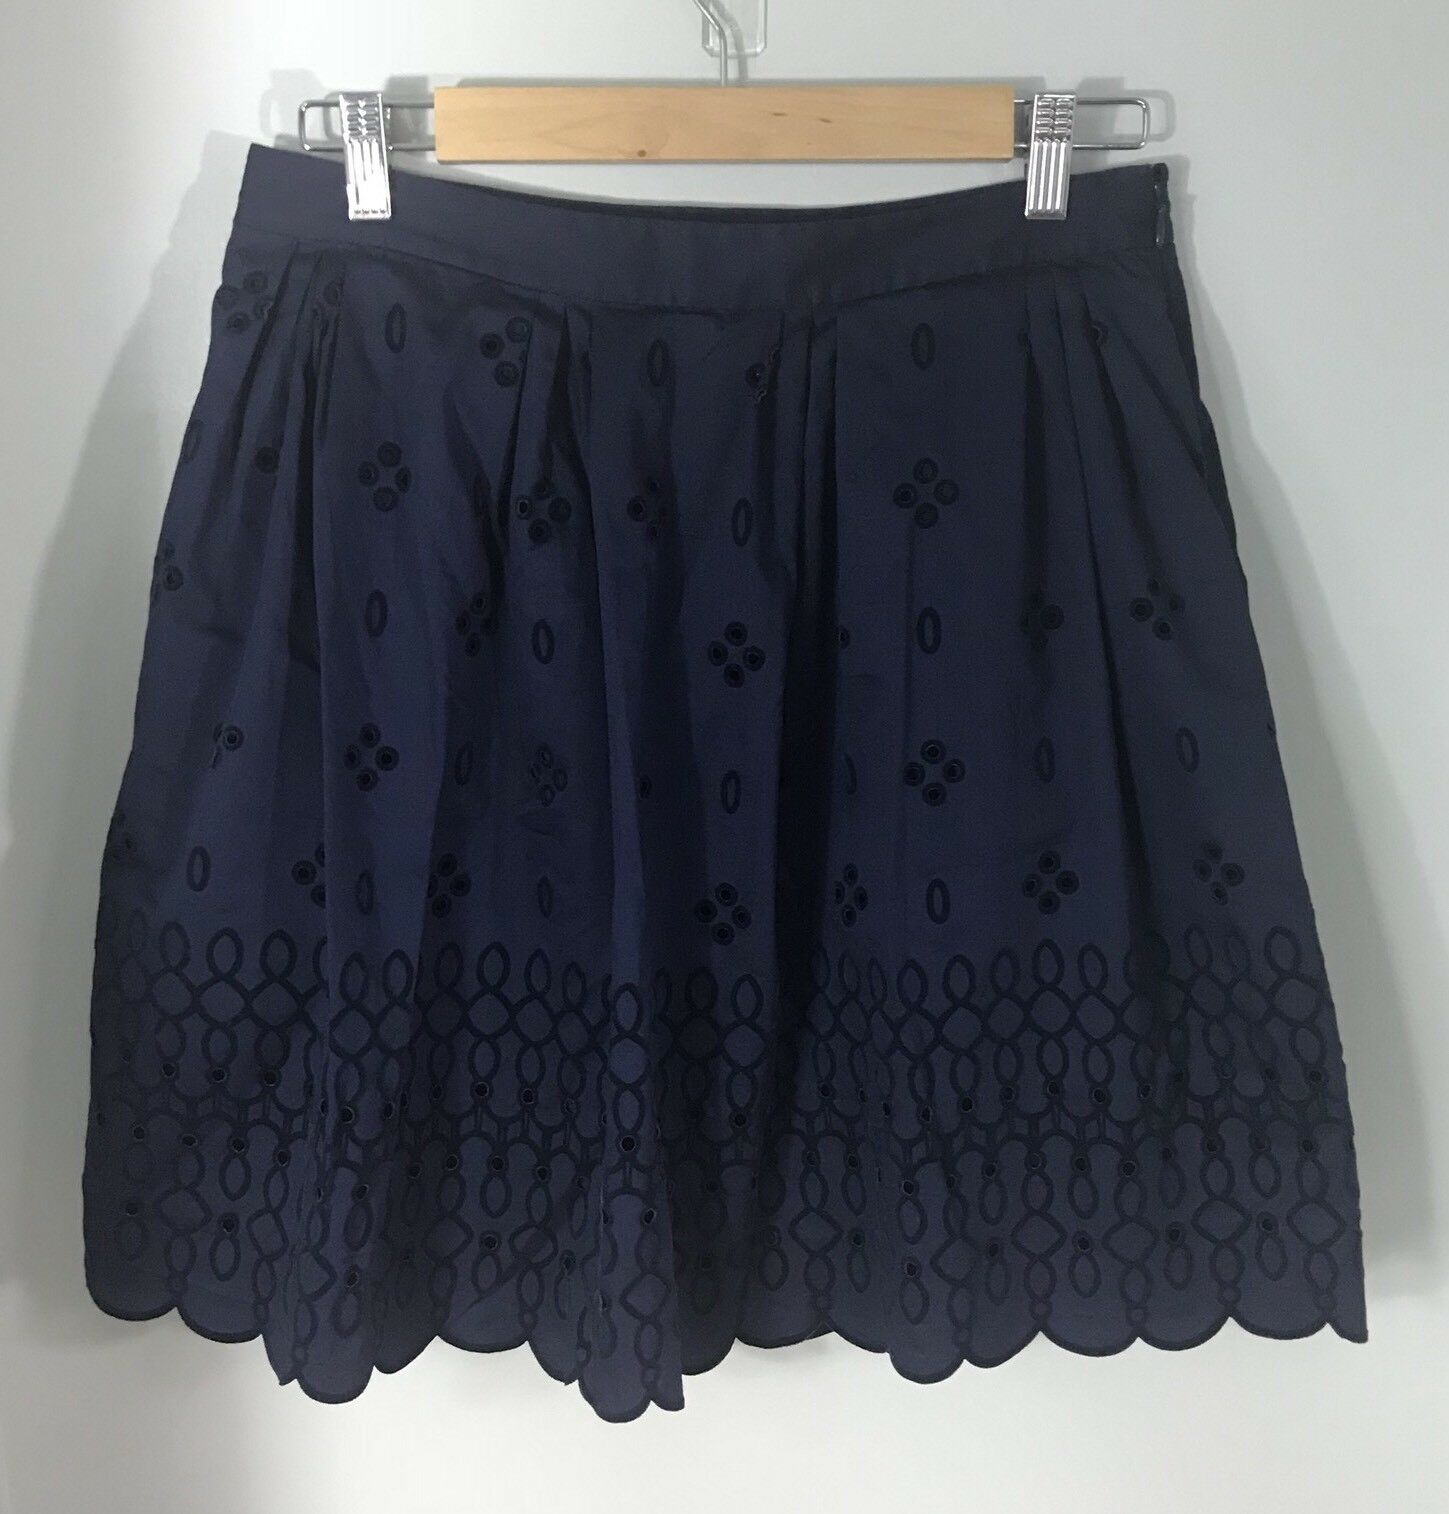 Vineyard Vines Women's Navy bluee Eyelet Velour Detail Scallop Trim Skirt Size 6